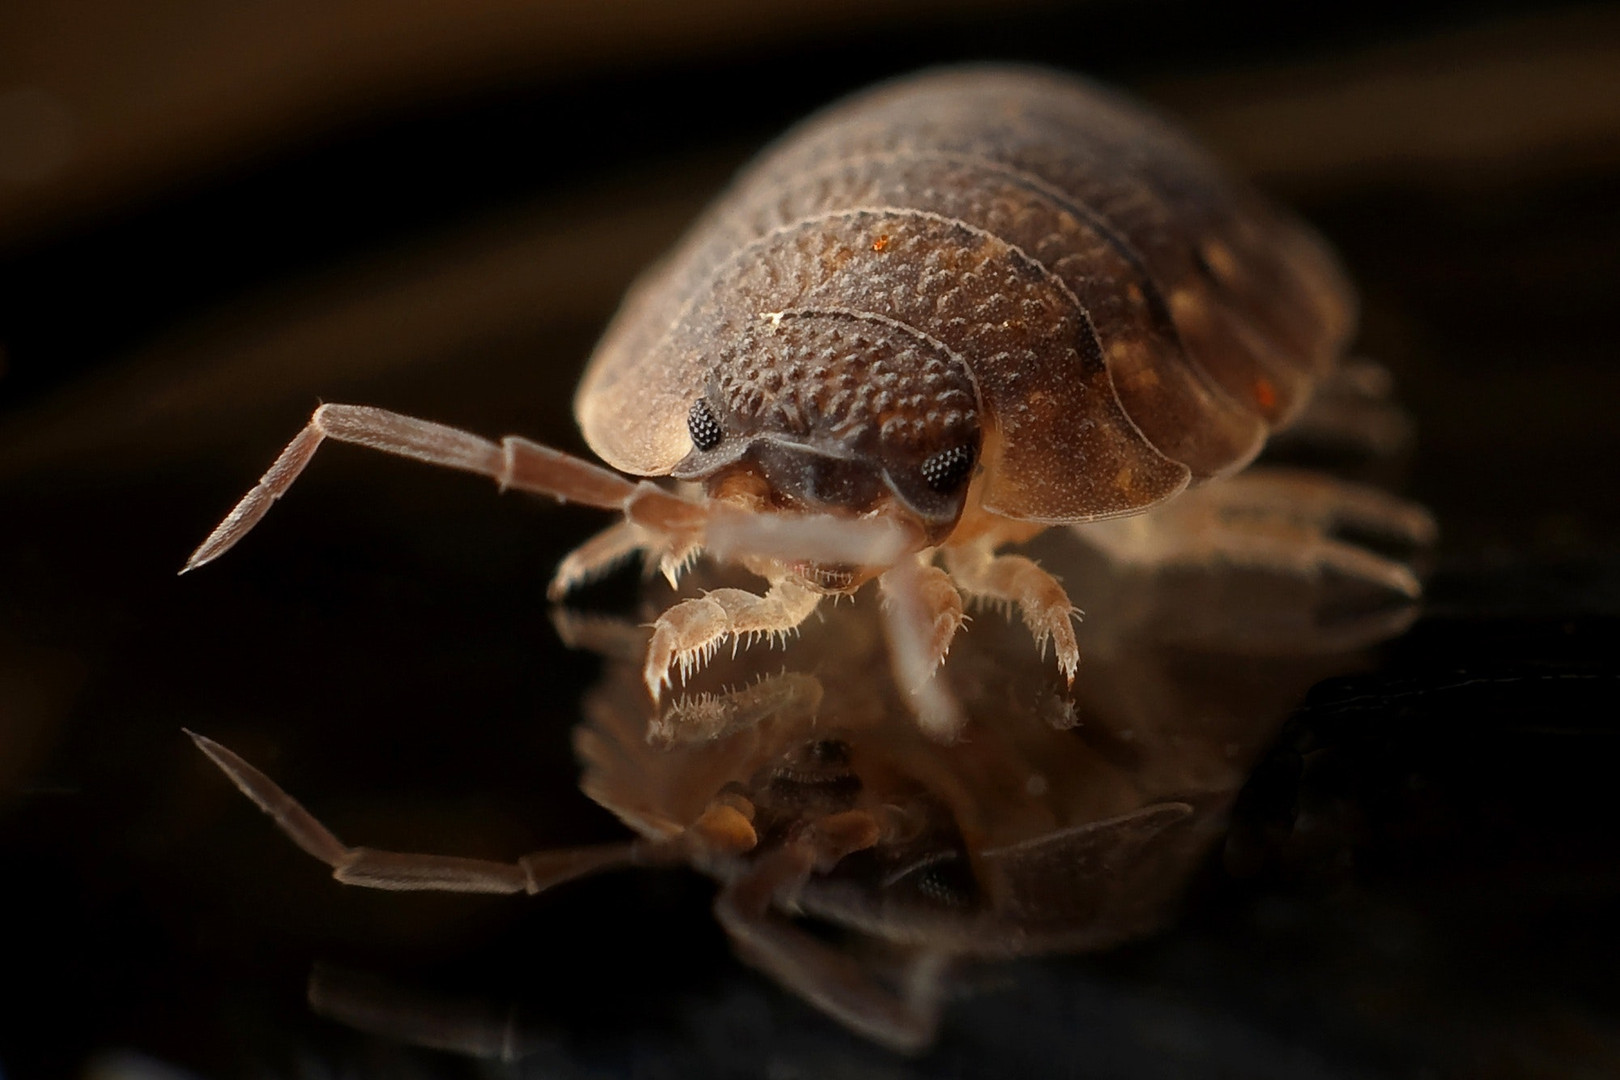 brown-8-legged-insect-on-black-surface-3